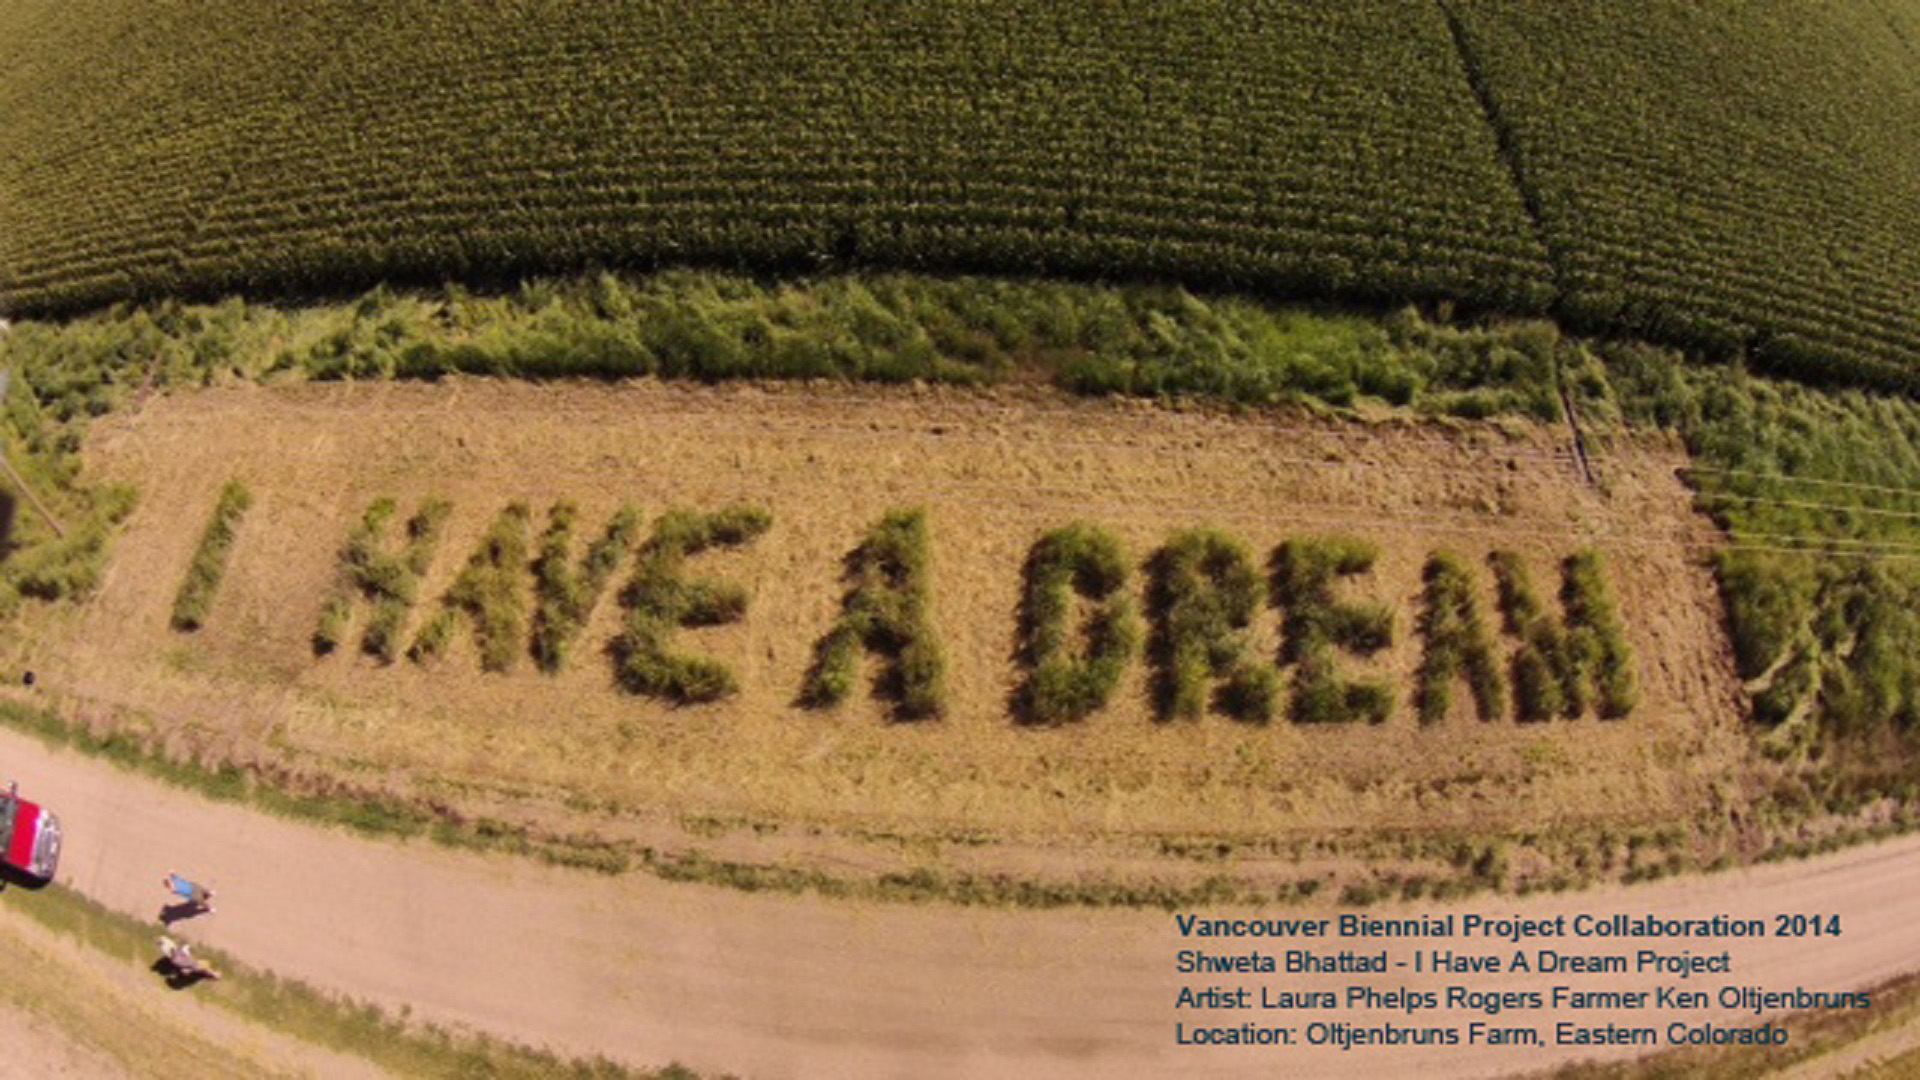 Laura Phelps Rogers, large crop art for - I Have A Dream Project - Drone Image - 2014 - Copy.jpg